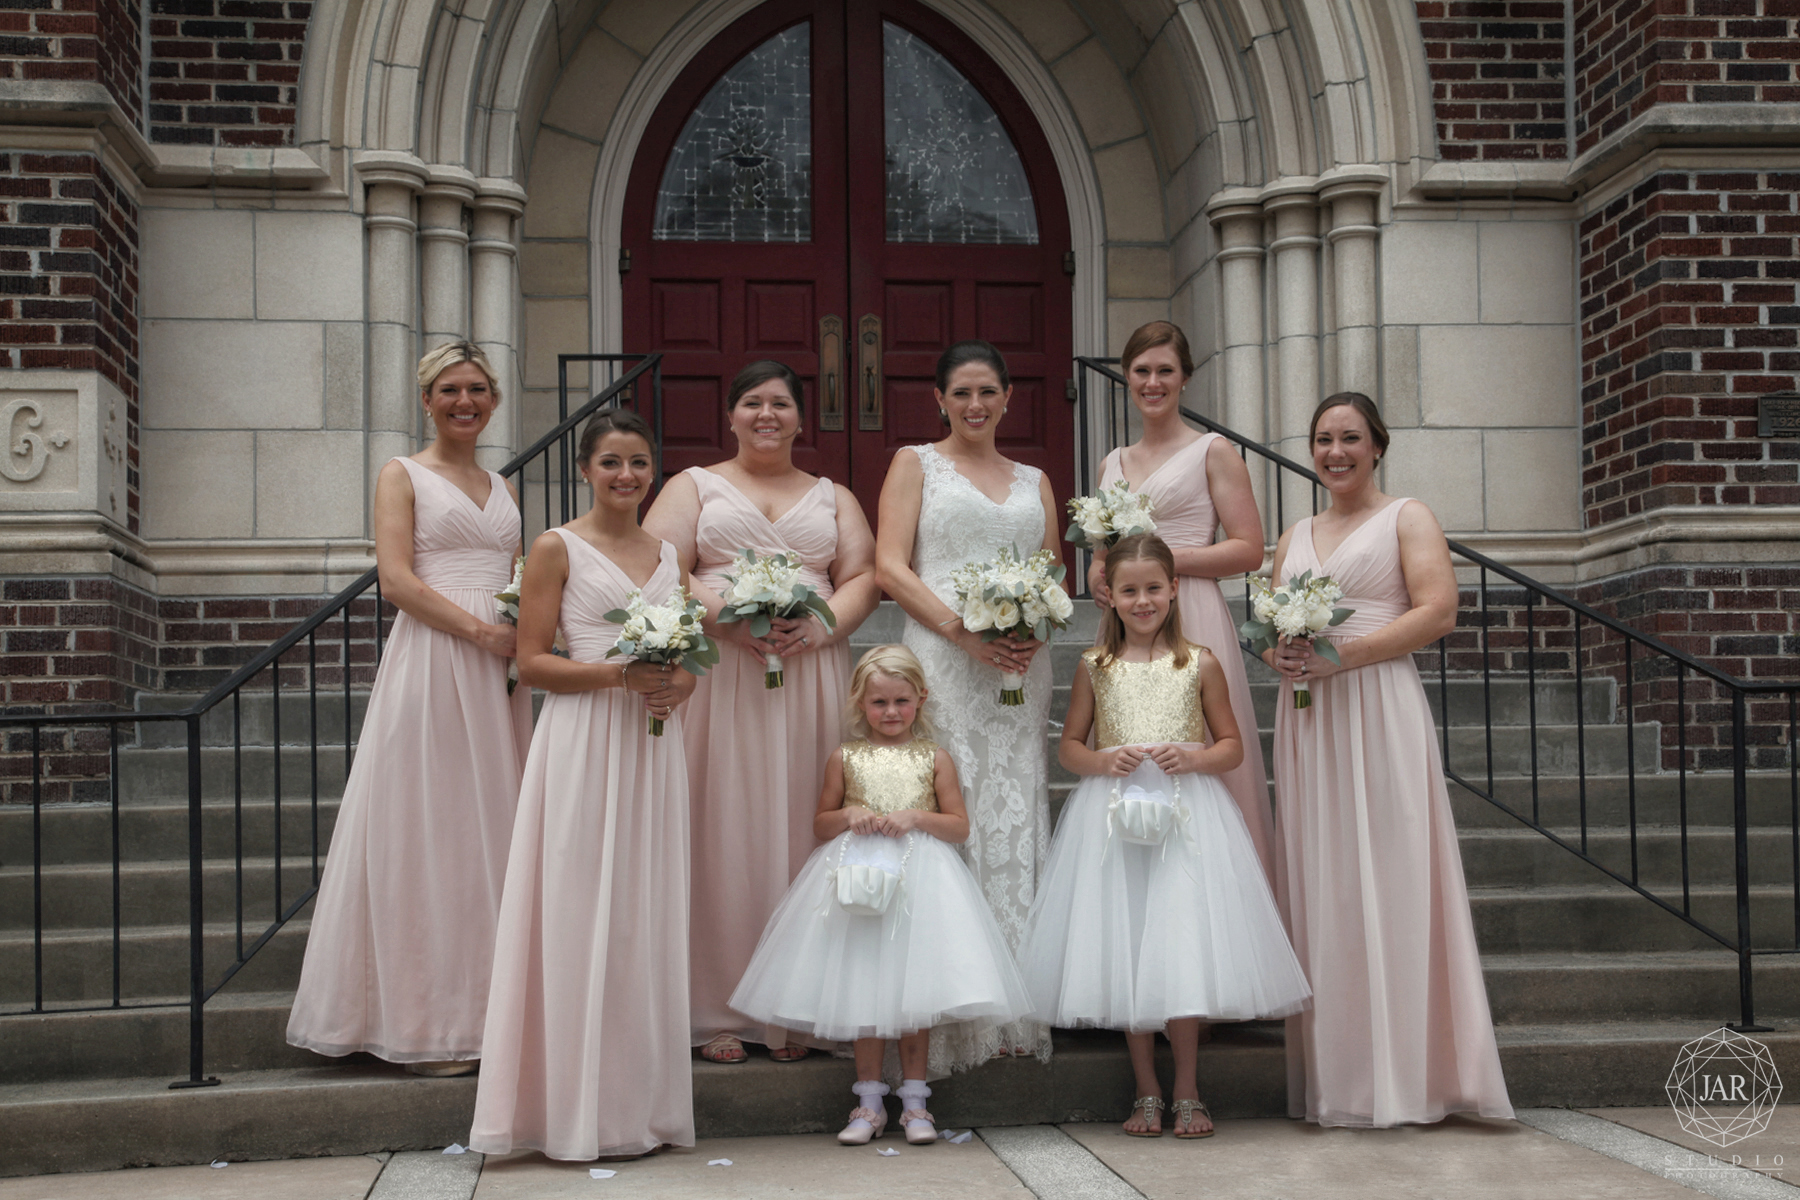 14-pink-bridesmaids-dresses-beautiful-flowergirls-gold-white-jarstudio-photographer-winterpark.JPG